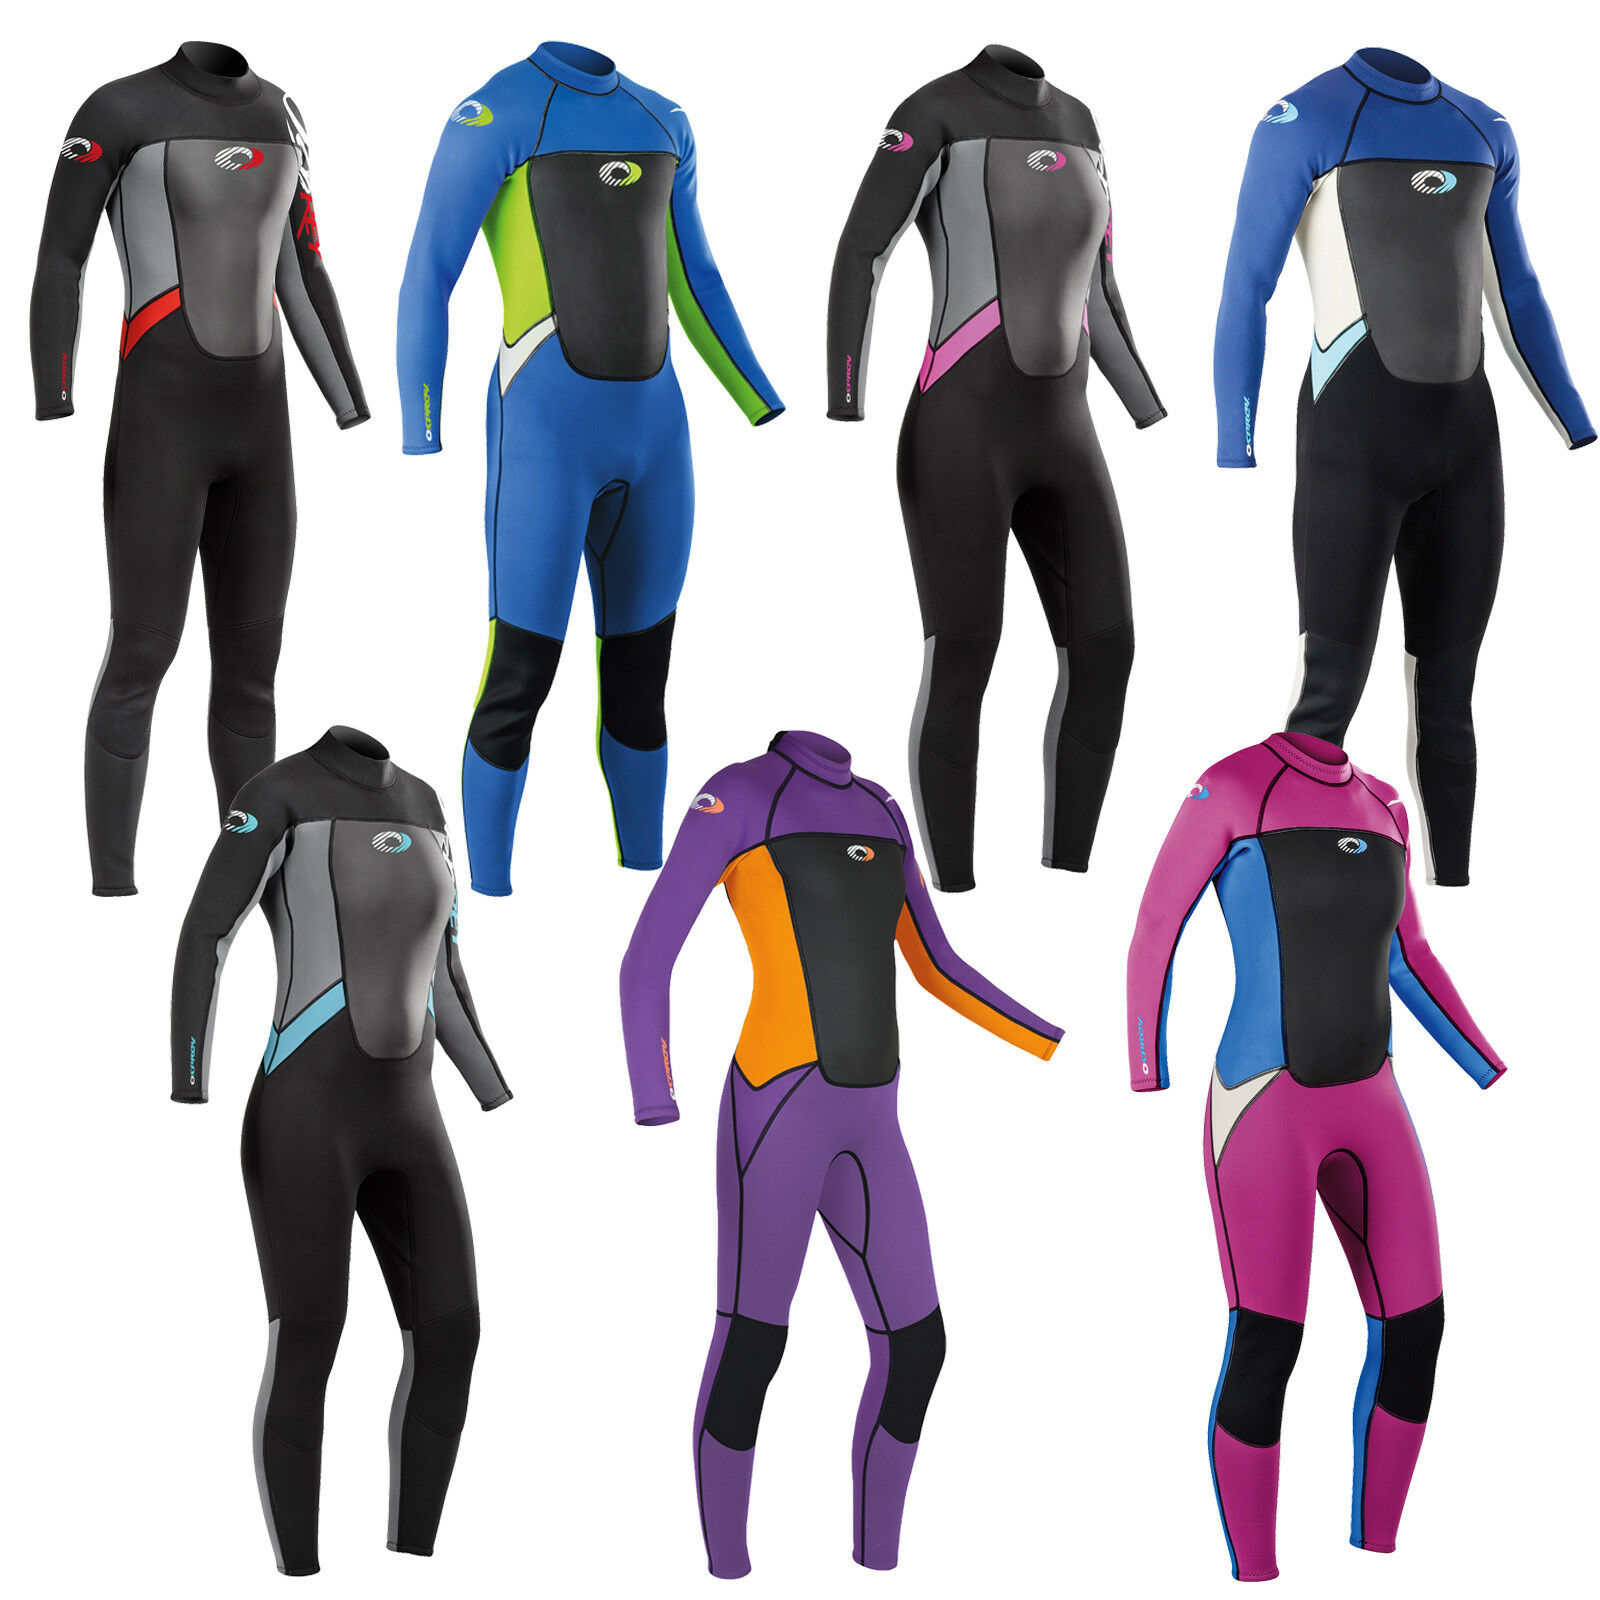 f6ed9dae5d3b Details about Osprey Boys Girls Origin Full Length 3/2mm Wetsuit Junior  Long Kids Childs Surf